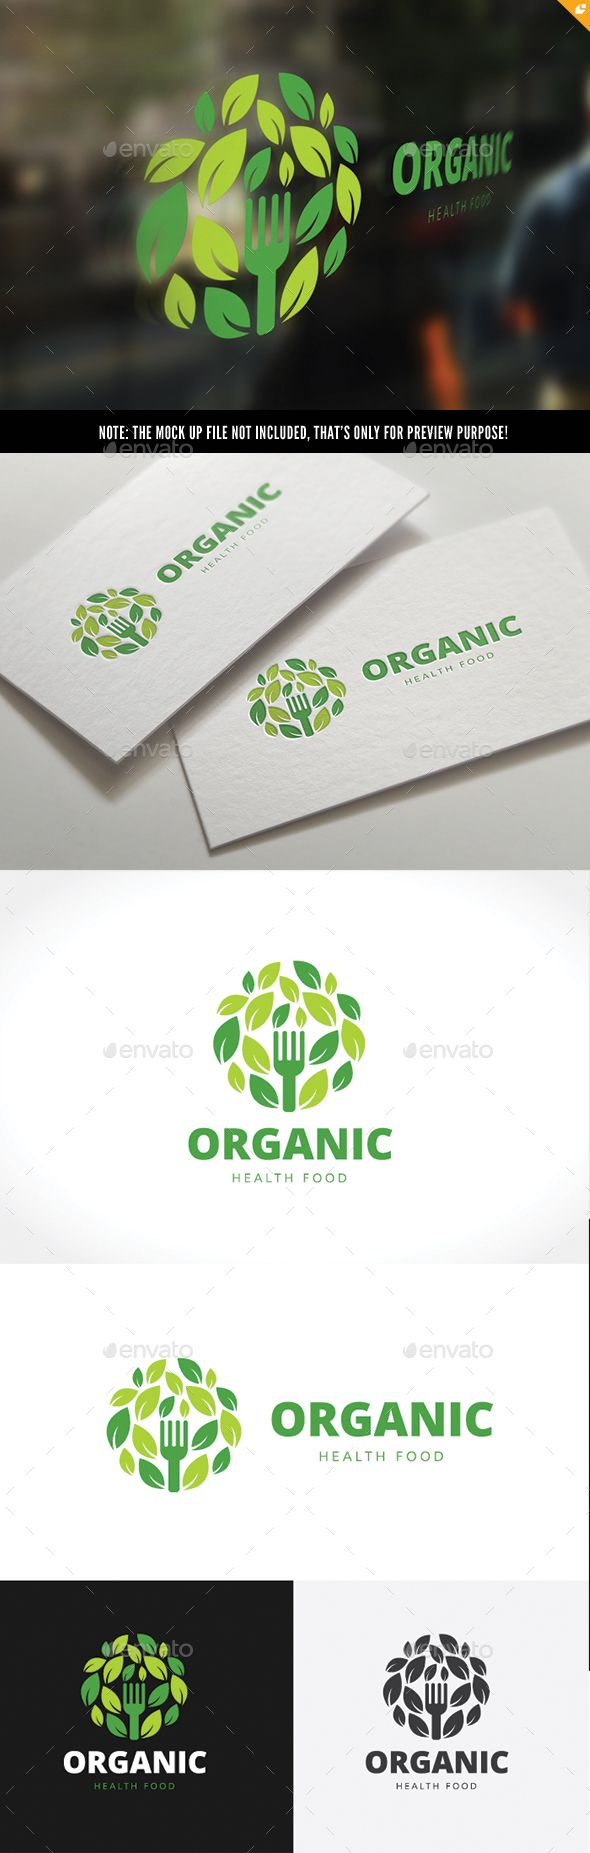 Organic Healthy Food Logo - Nature Logo Templates Download here : http://graphicriver.net/item/organic-healthy-food-logo/15896406?s_rank=70&ref=Al-fatih